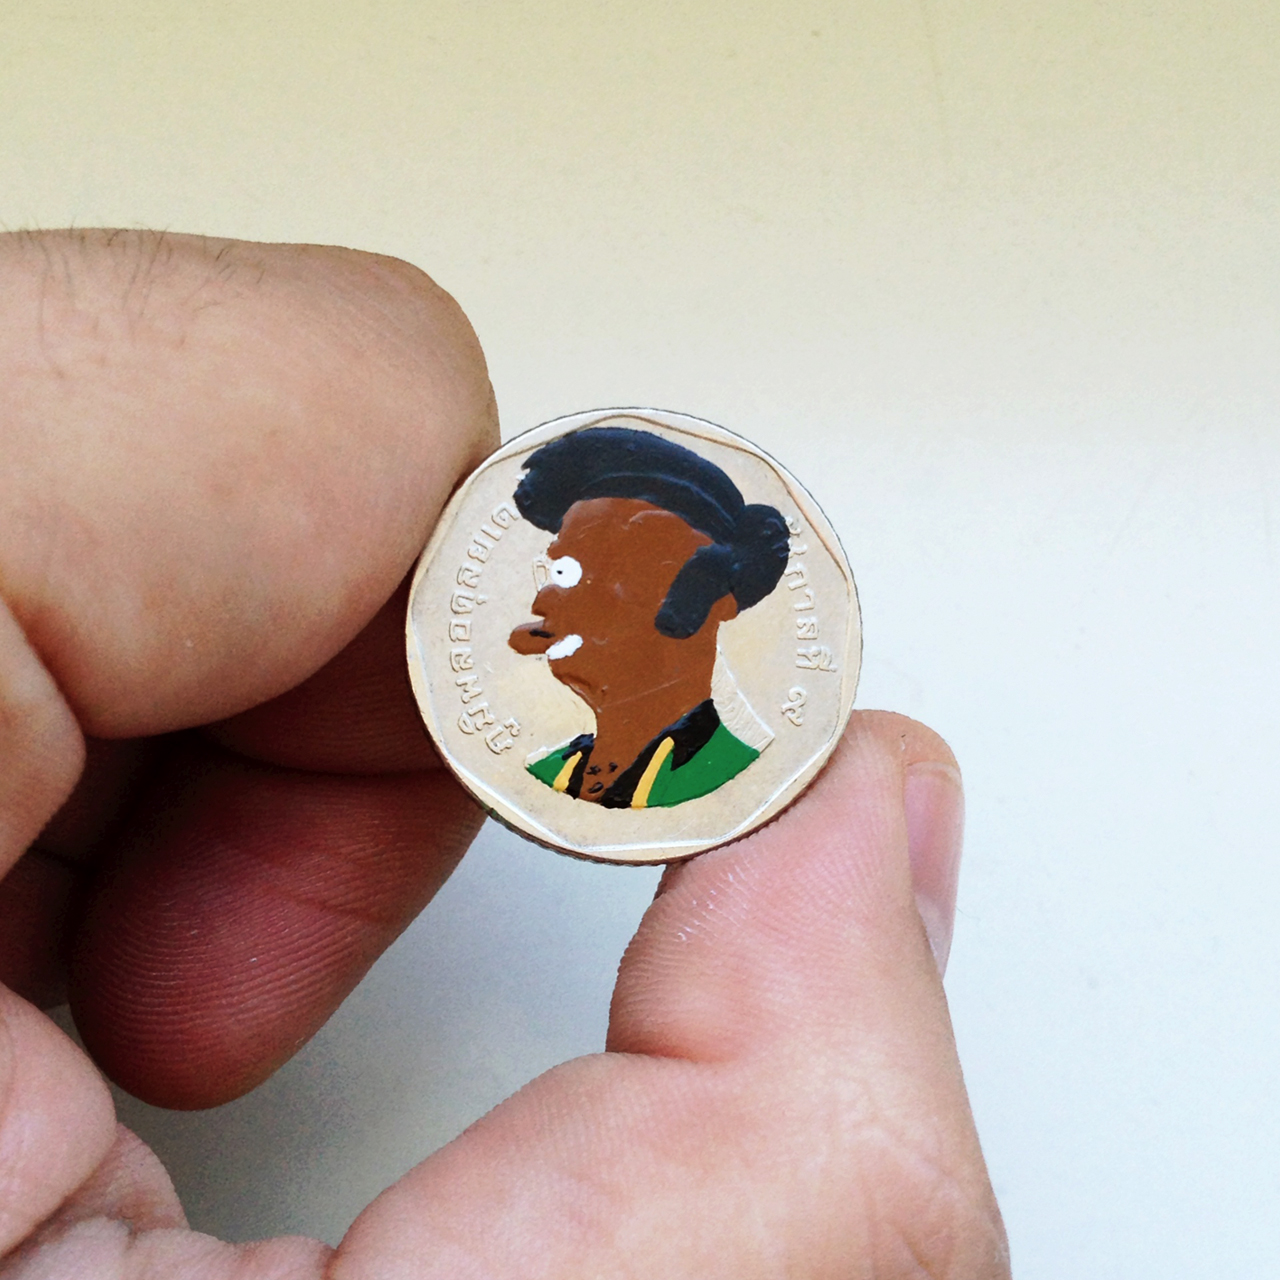 Andre Levy coin painting of Apu Nahasapeemapetilon